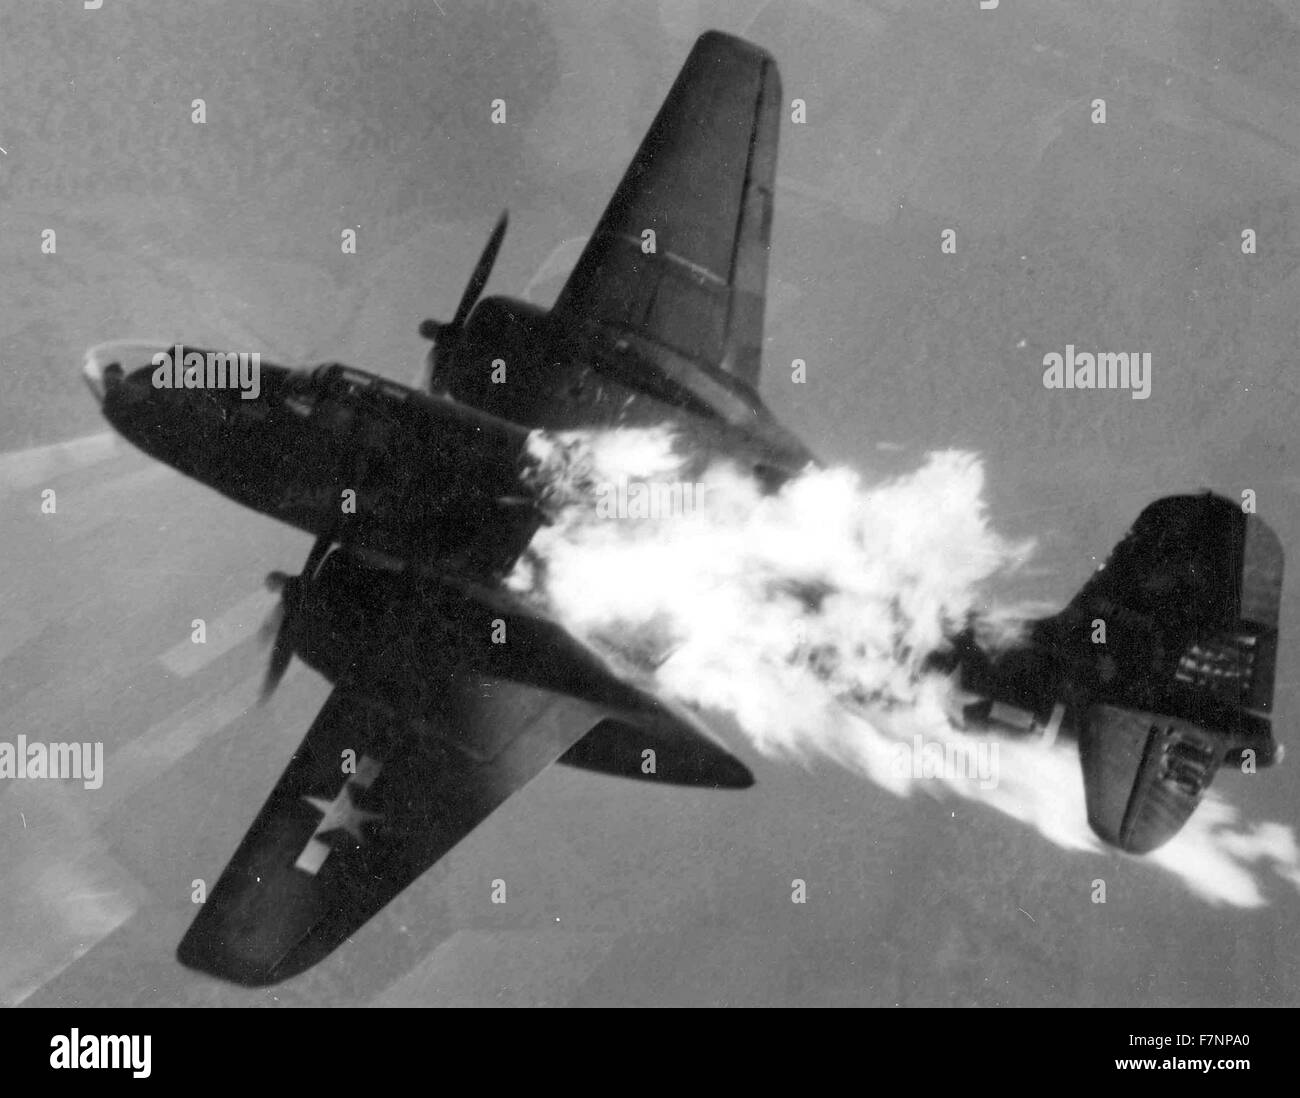 World war two, US Air Force A-20 Havoc aircraft, after being hit by German anti-aircraft fire. 1944 - Stock Image